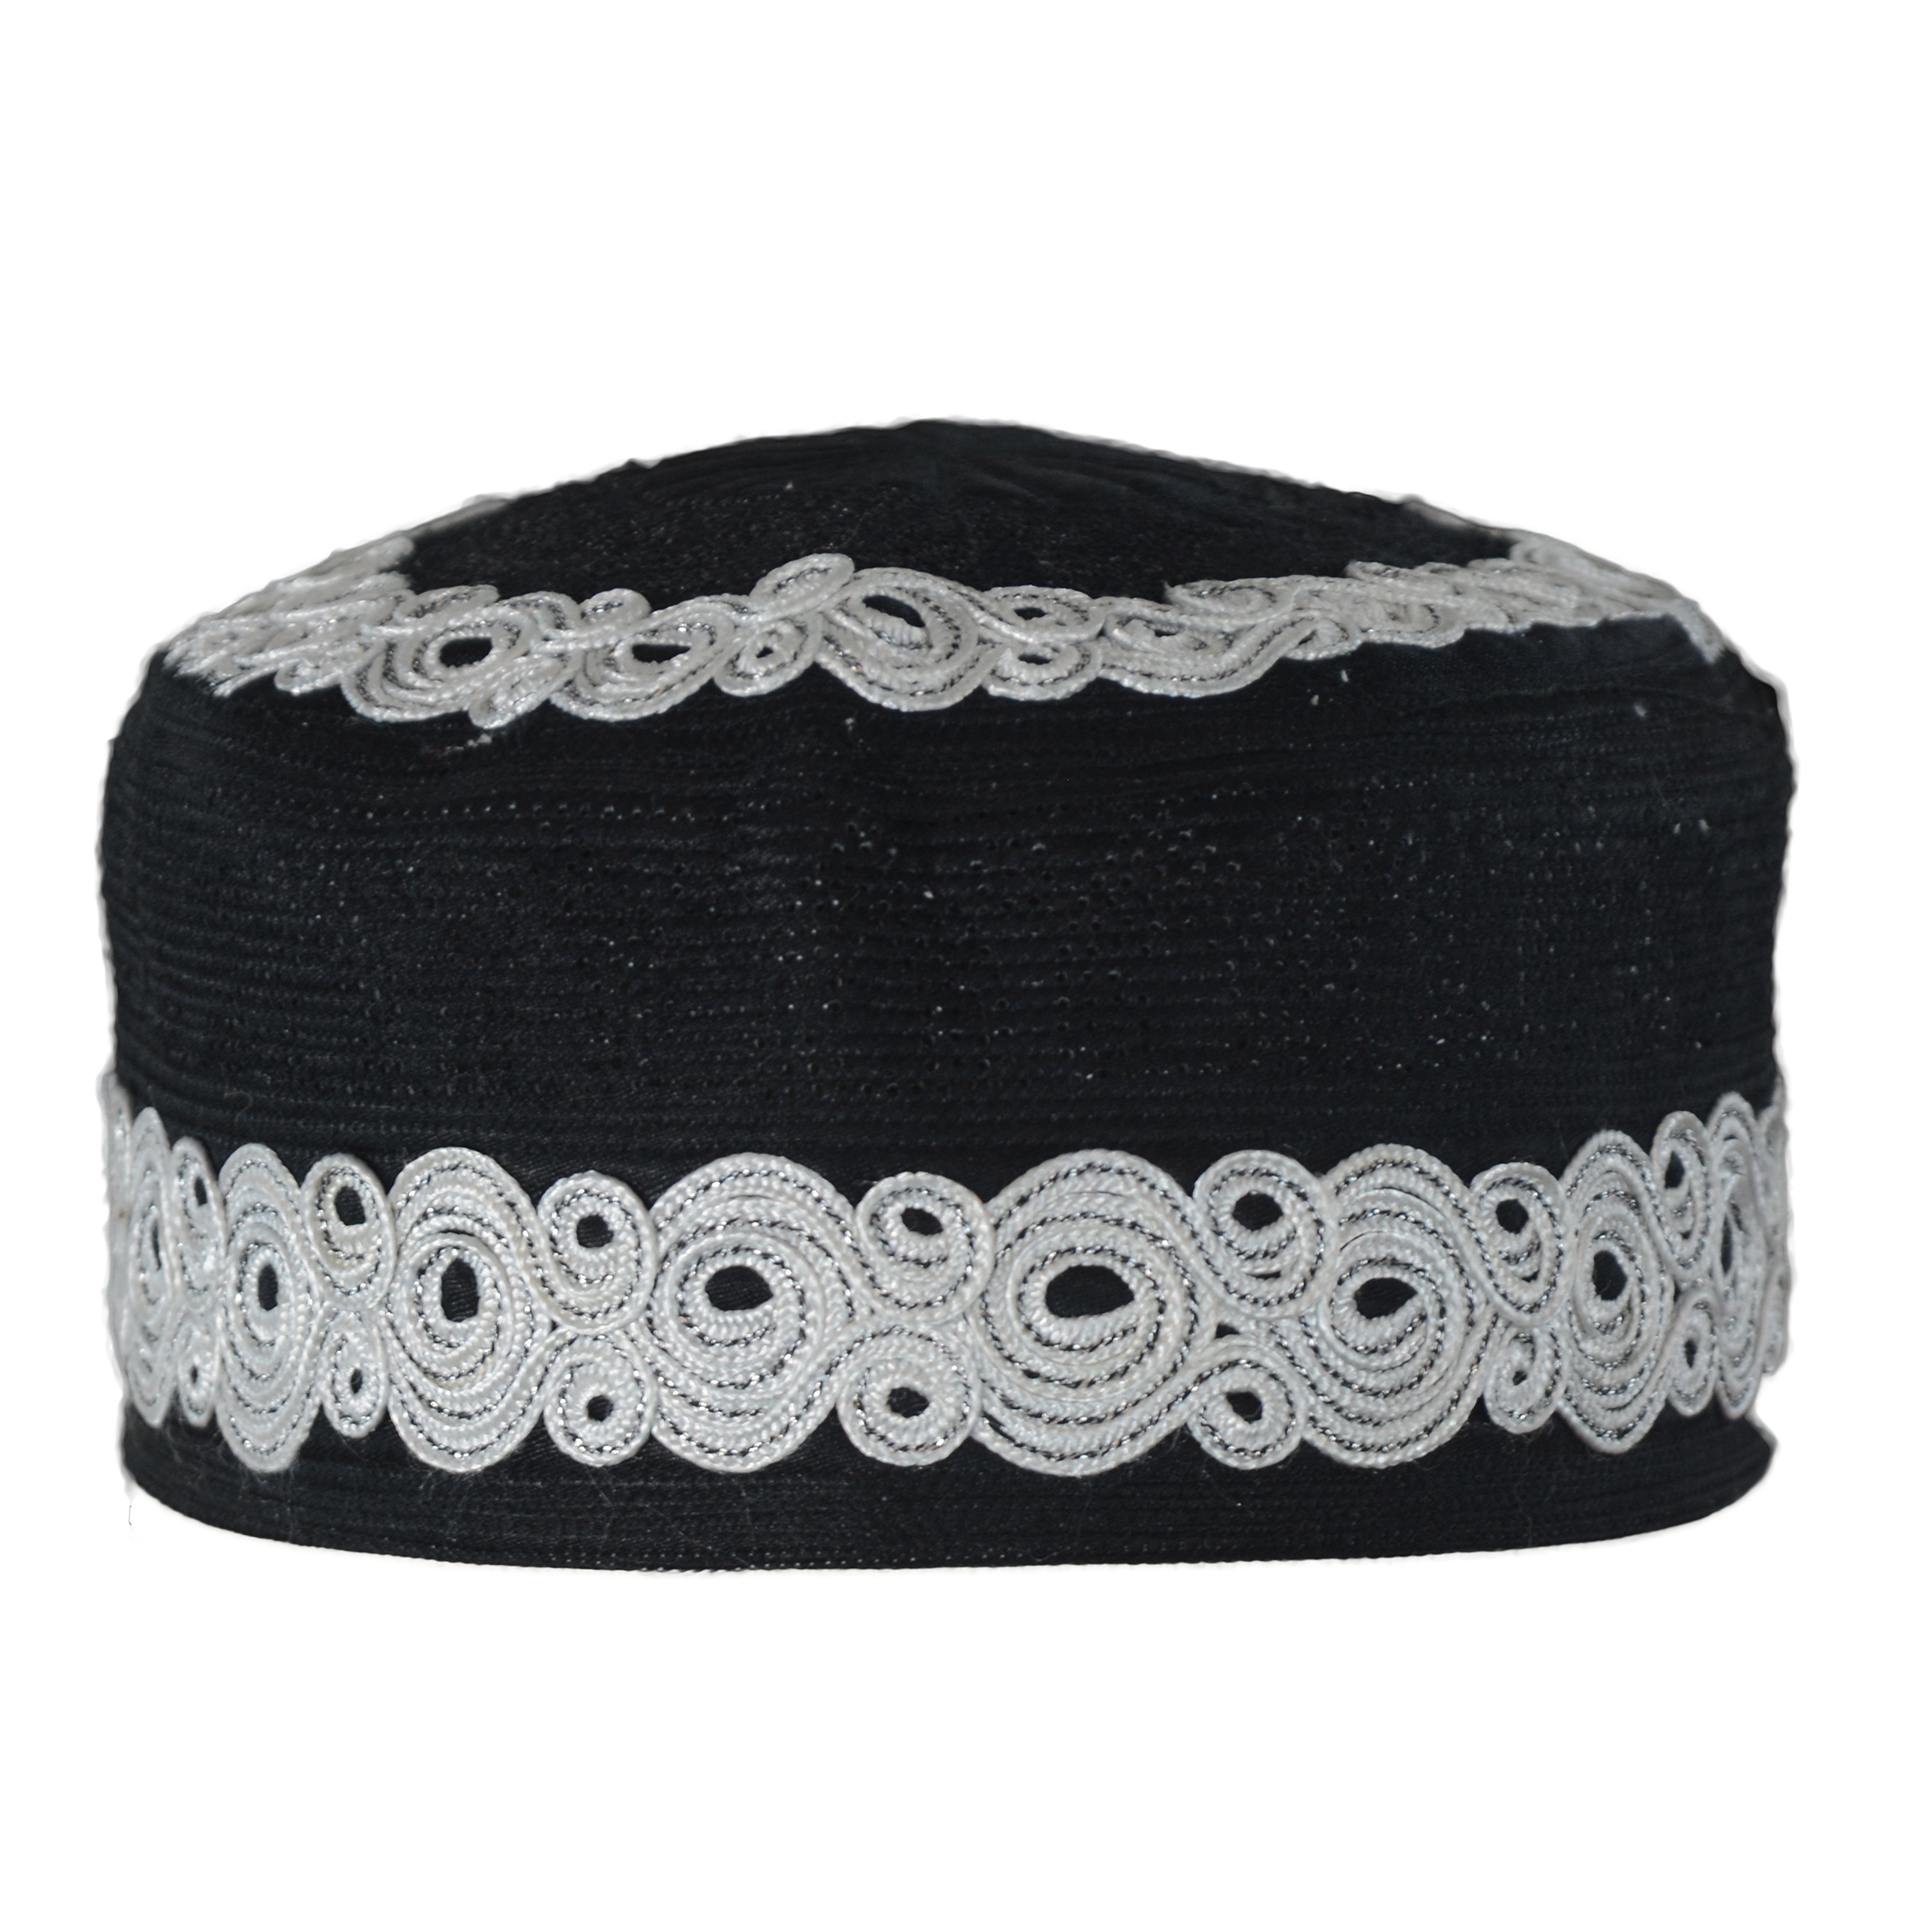 Mens Embroidered Kufi Hat Muslim Cap with Spirals and Mosque Dome Designs –  ME719 9c01170b803